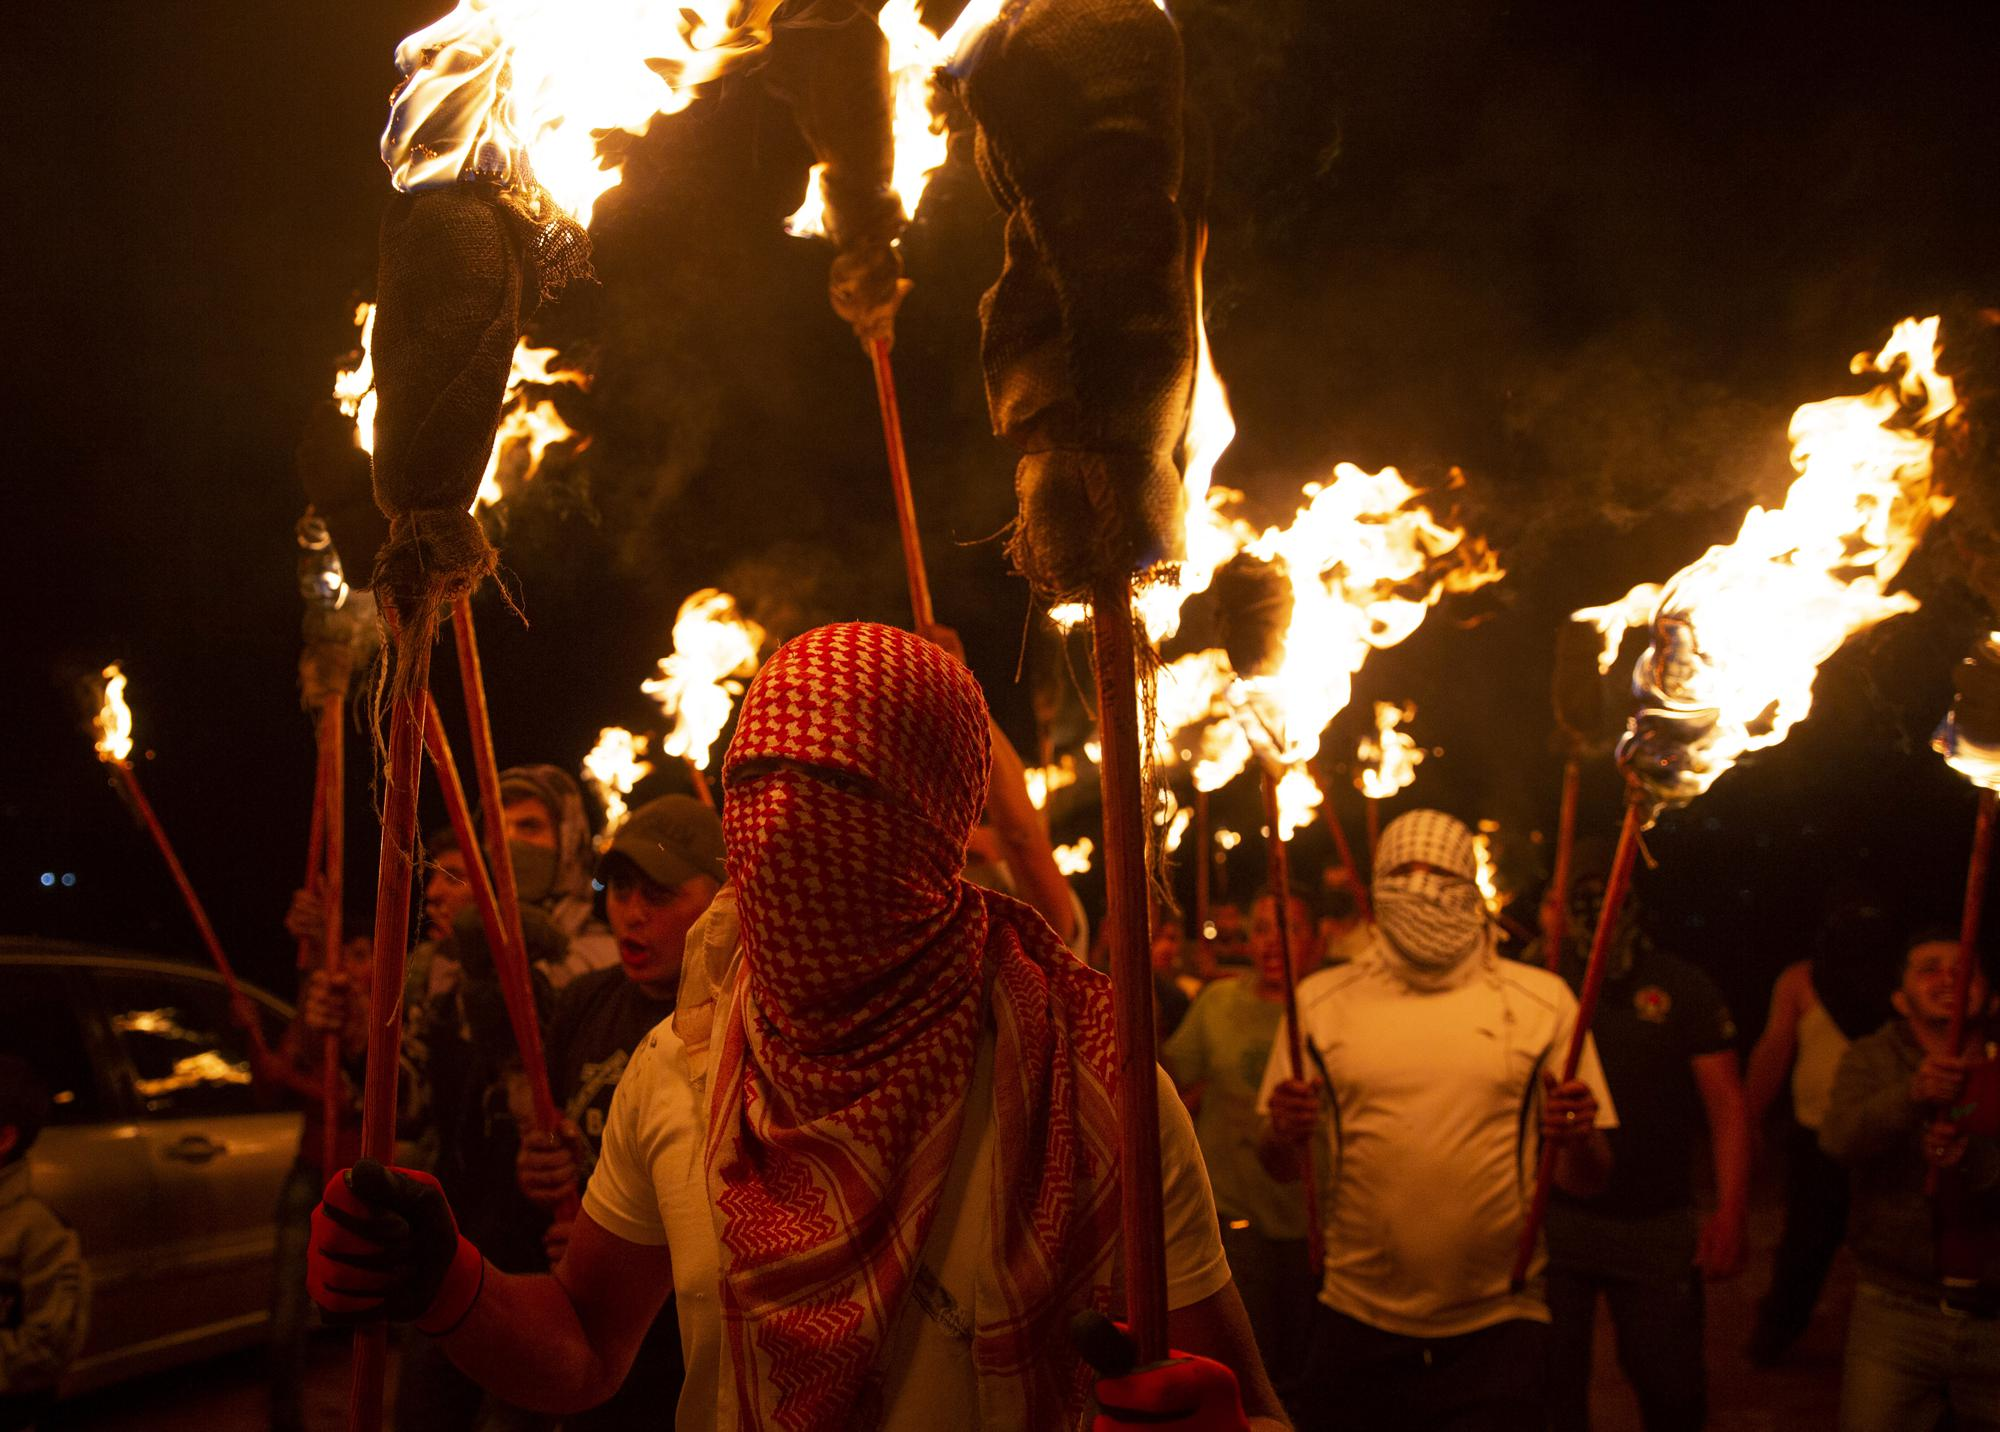 Palestinian demonstrators march with torches during a protest against the West Bank Jewish settlement outpost of Eviatar that was rapidly established the previous month, at the Palestinian village of Beita, near the West Bank city of Nablus, Sunday, June 27, 2021. The Palestinians say it was established on their farmland and fear it will grow and merge with other large settlements in the area. (AP Photo/Majdi Mohammed)